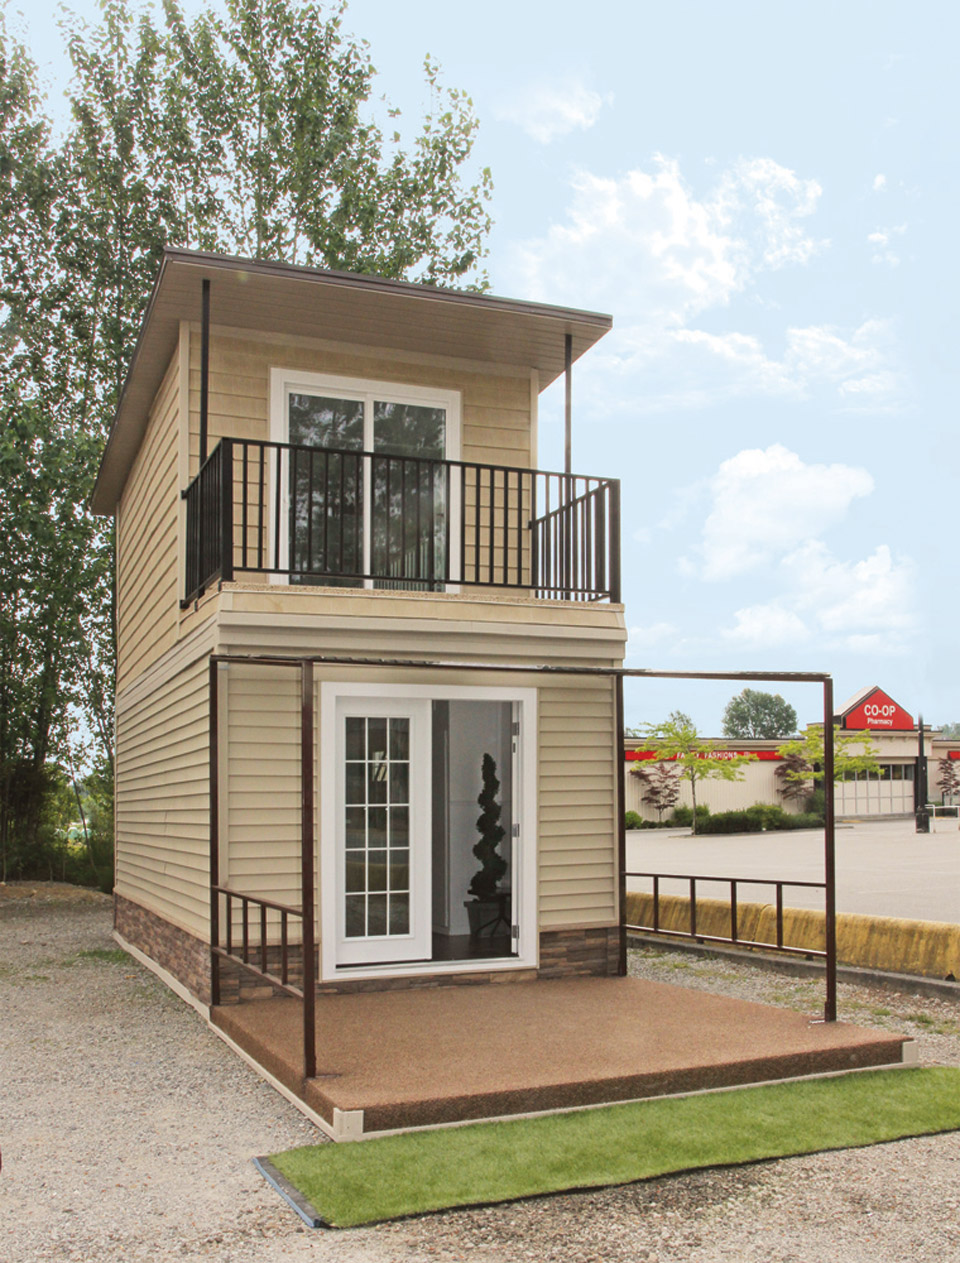 Perky Eagle A Steel Framed Micro Home Two Story House Porch Two Story House Layout curbed Two Story House